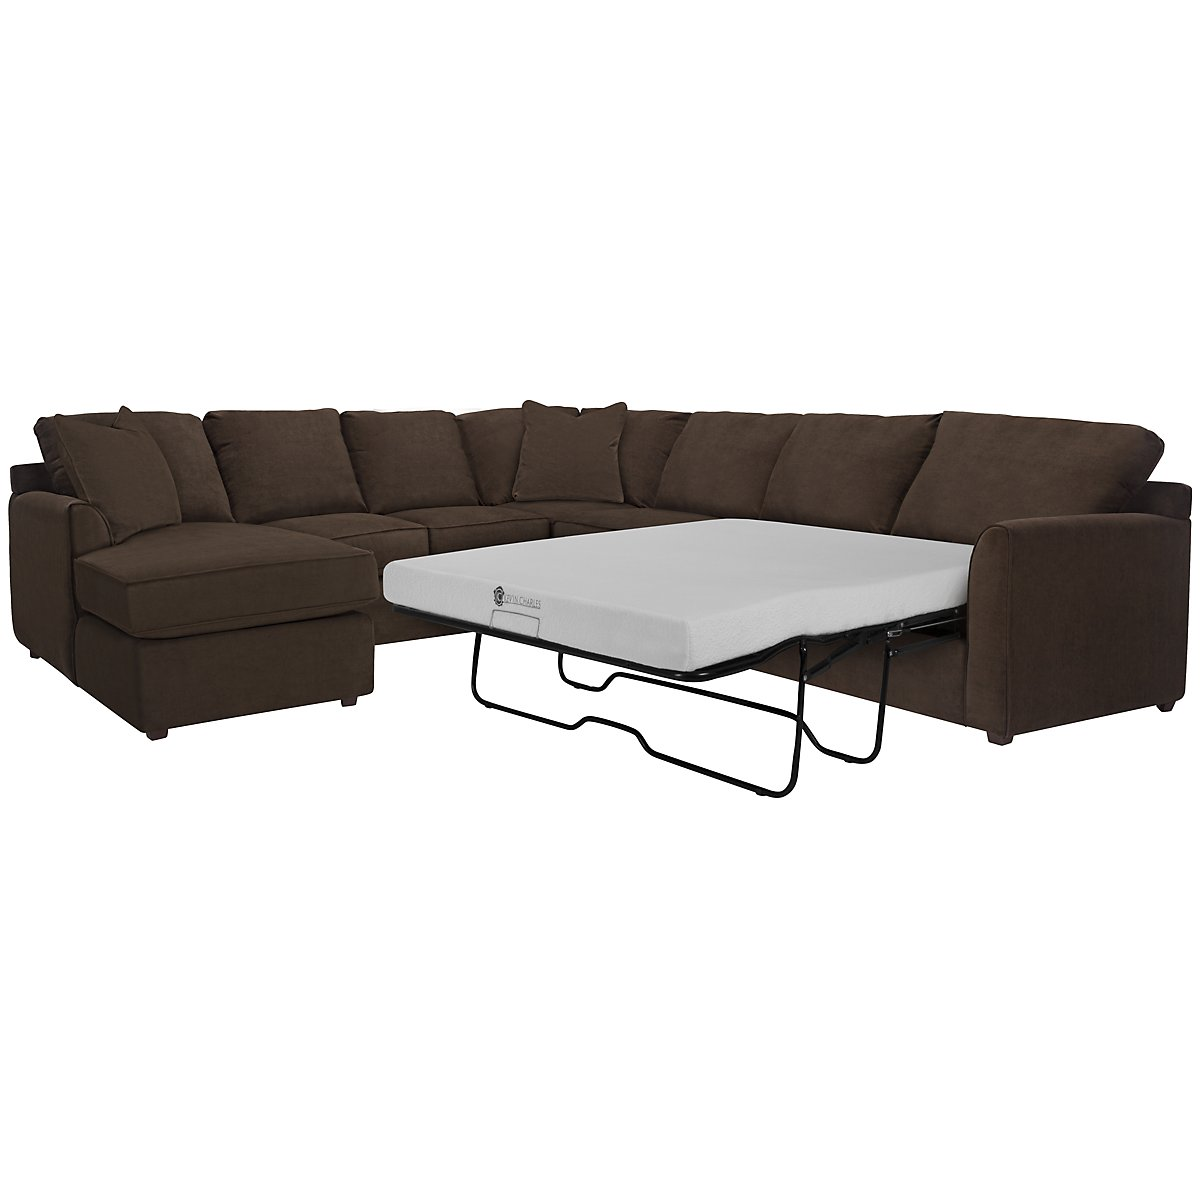 Express3 Dk Brown Microfiber Left Chaise Memory Foam Sleeper Sectional